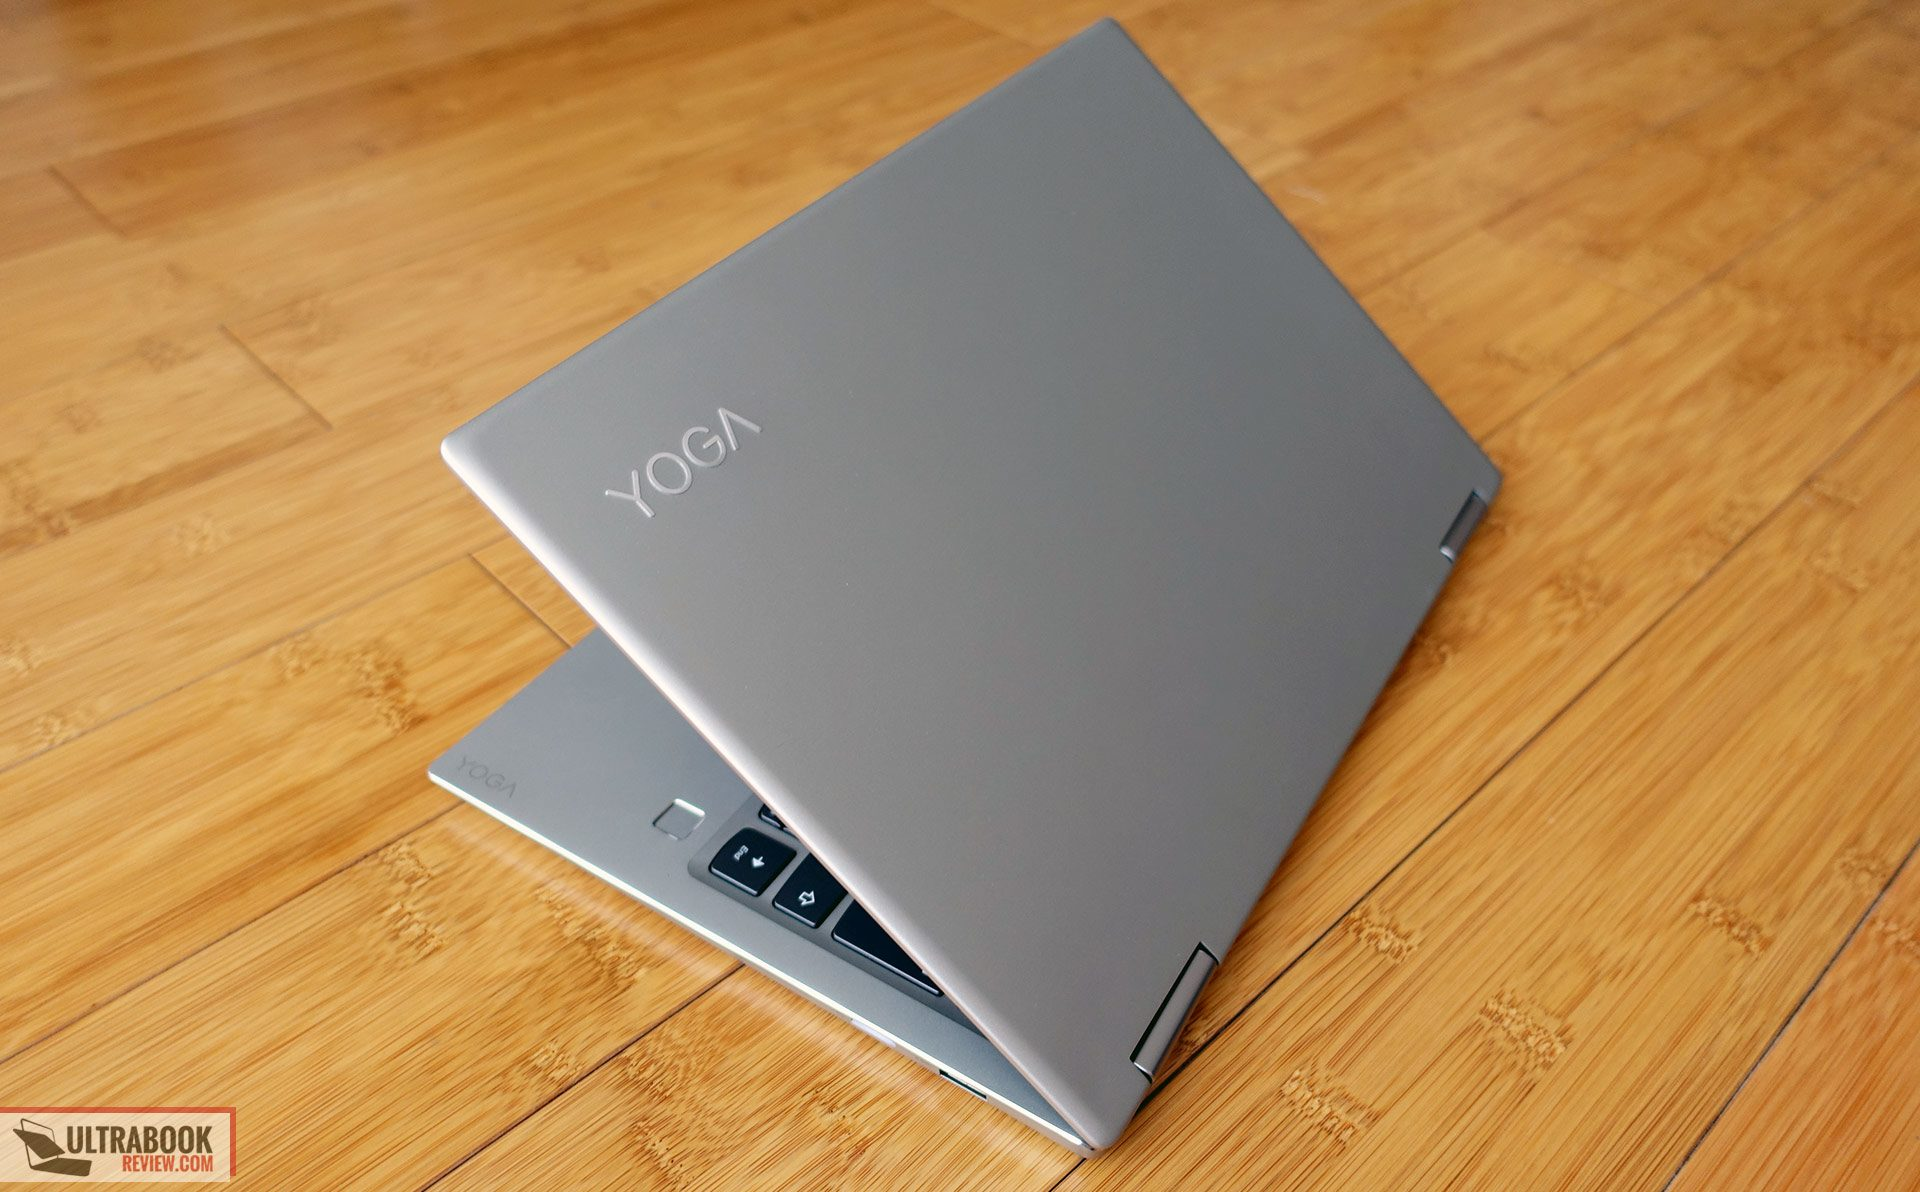 lenovo yoga 720 13 inch review compact and well priced 2 in 1 convertible. Black Bedroom Furniture Sets. Home Design Ideas